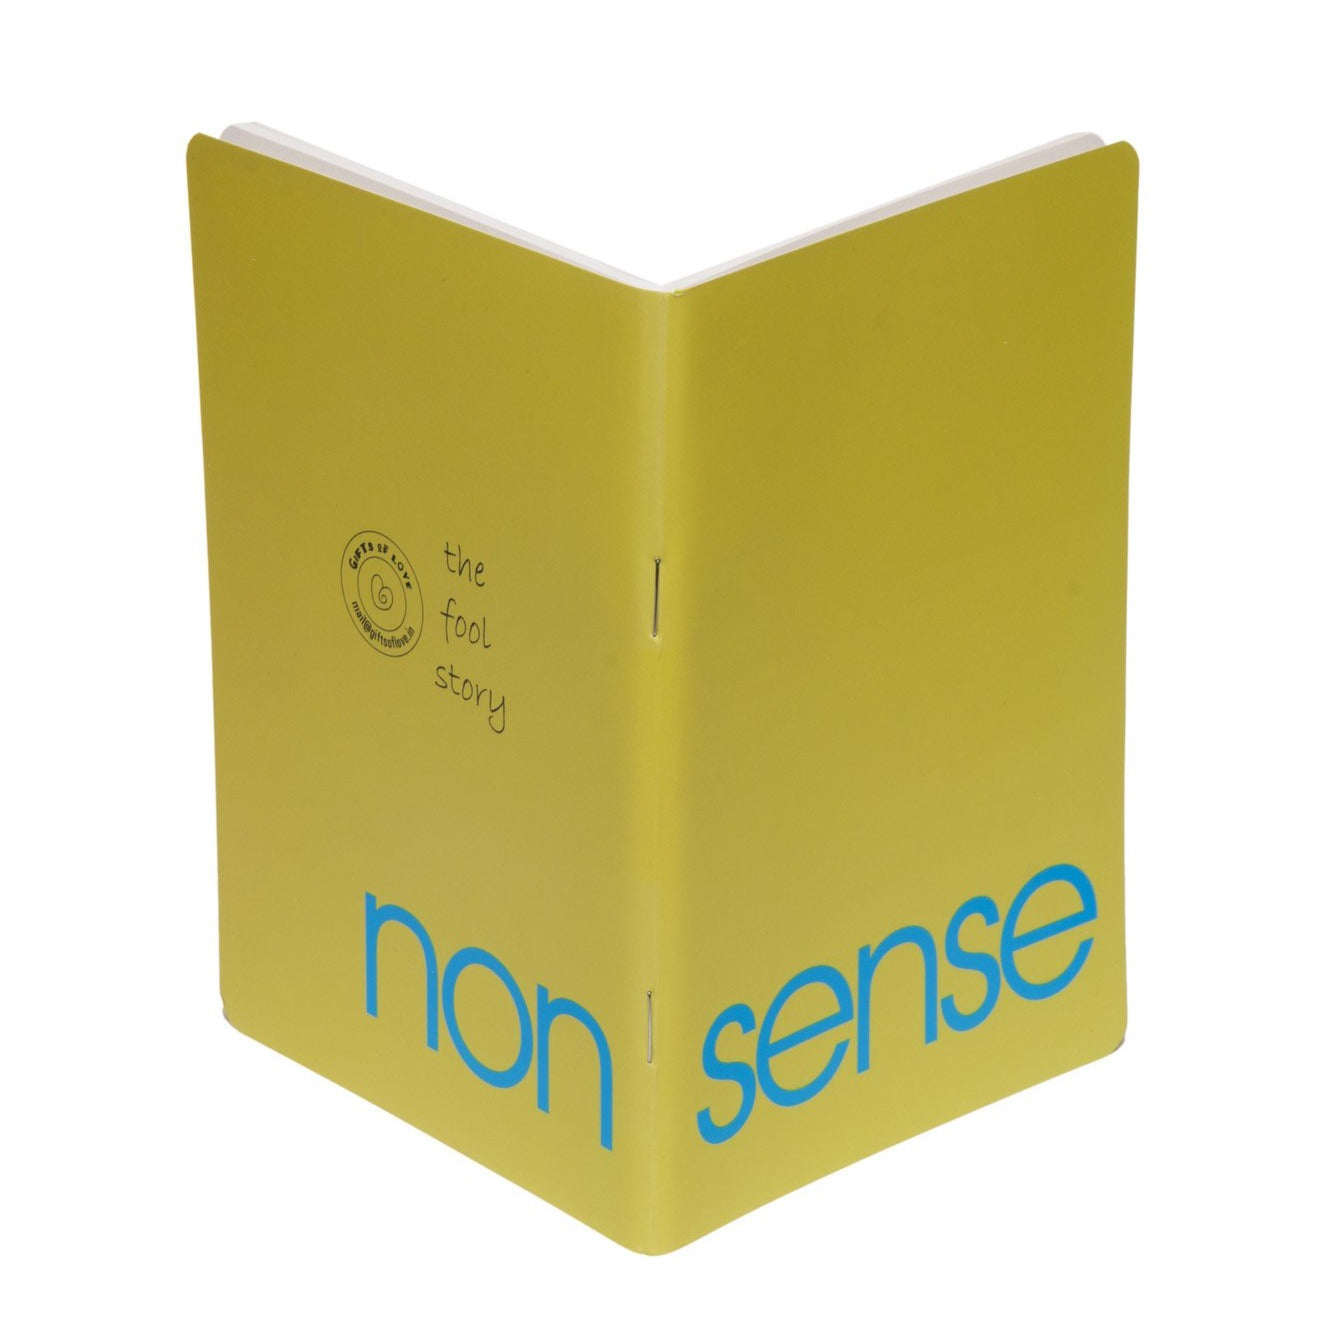 Gifts of Love Fool Story Notebook Non Sense